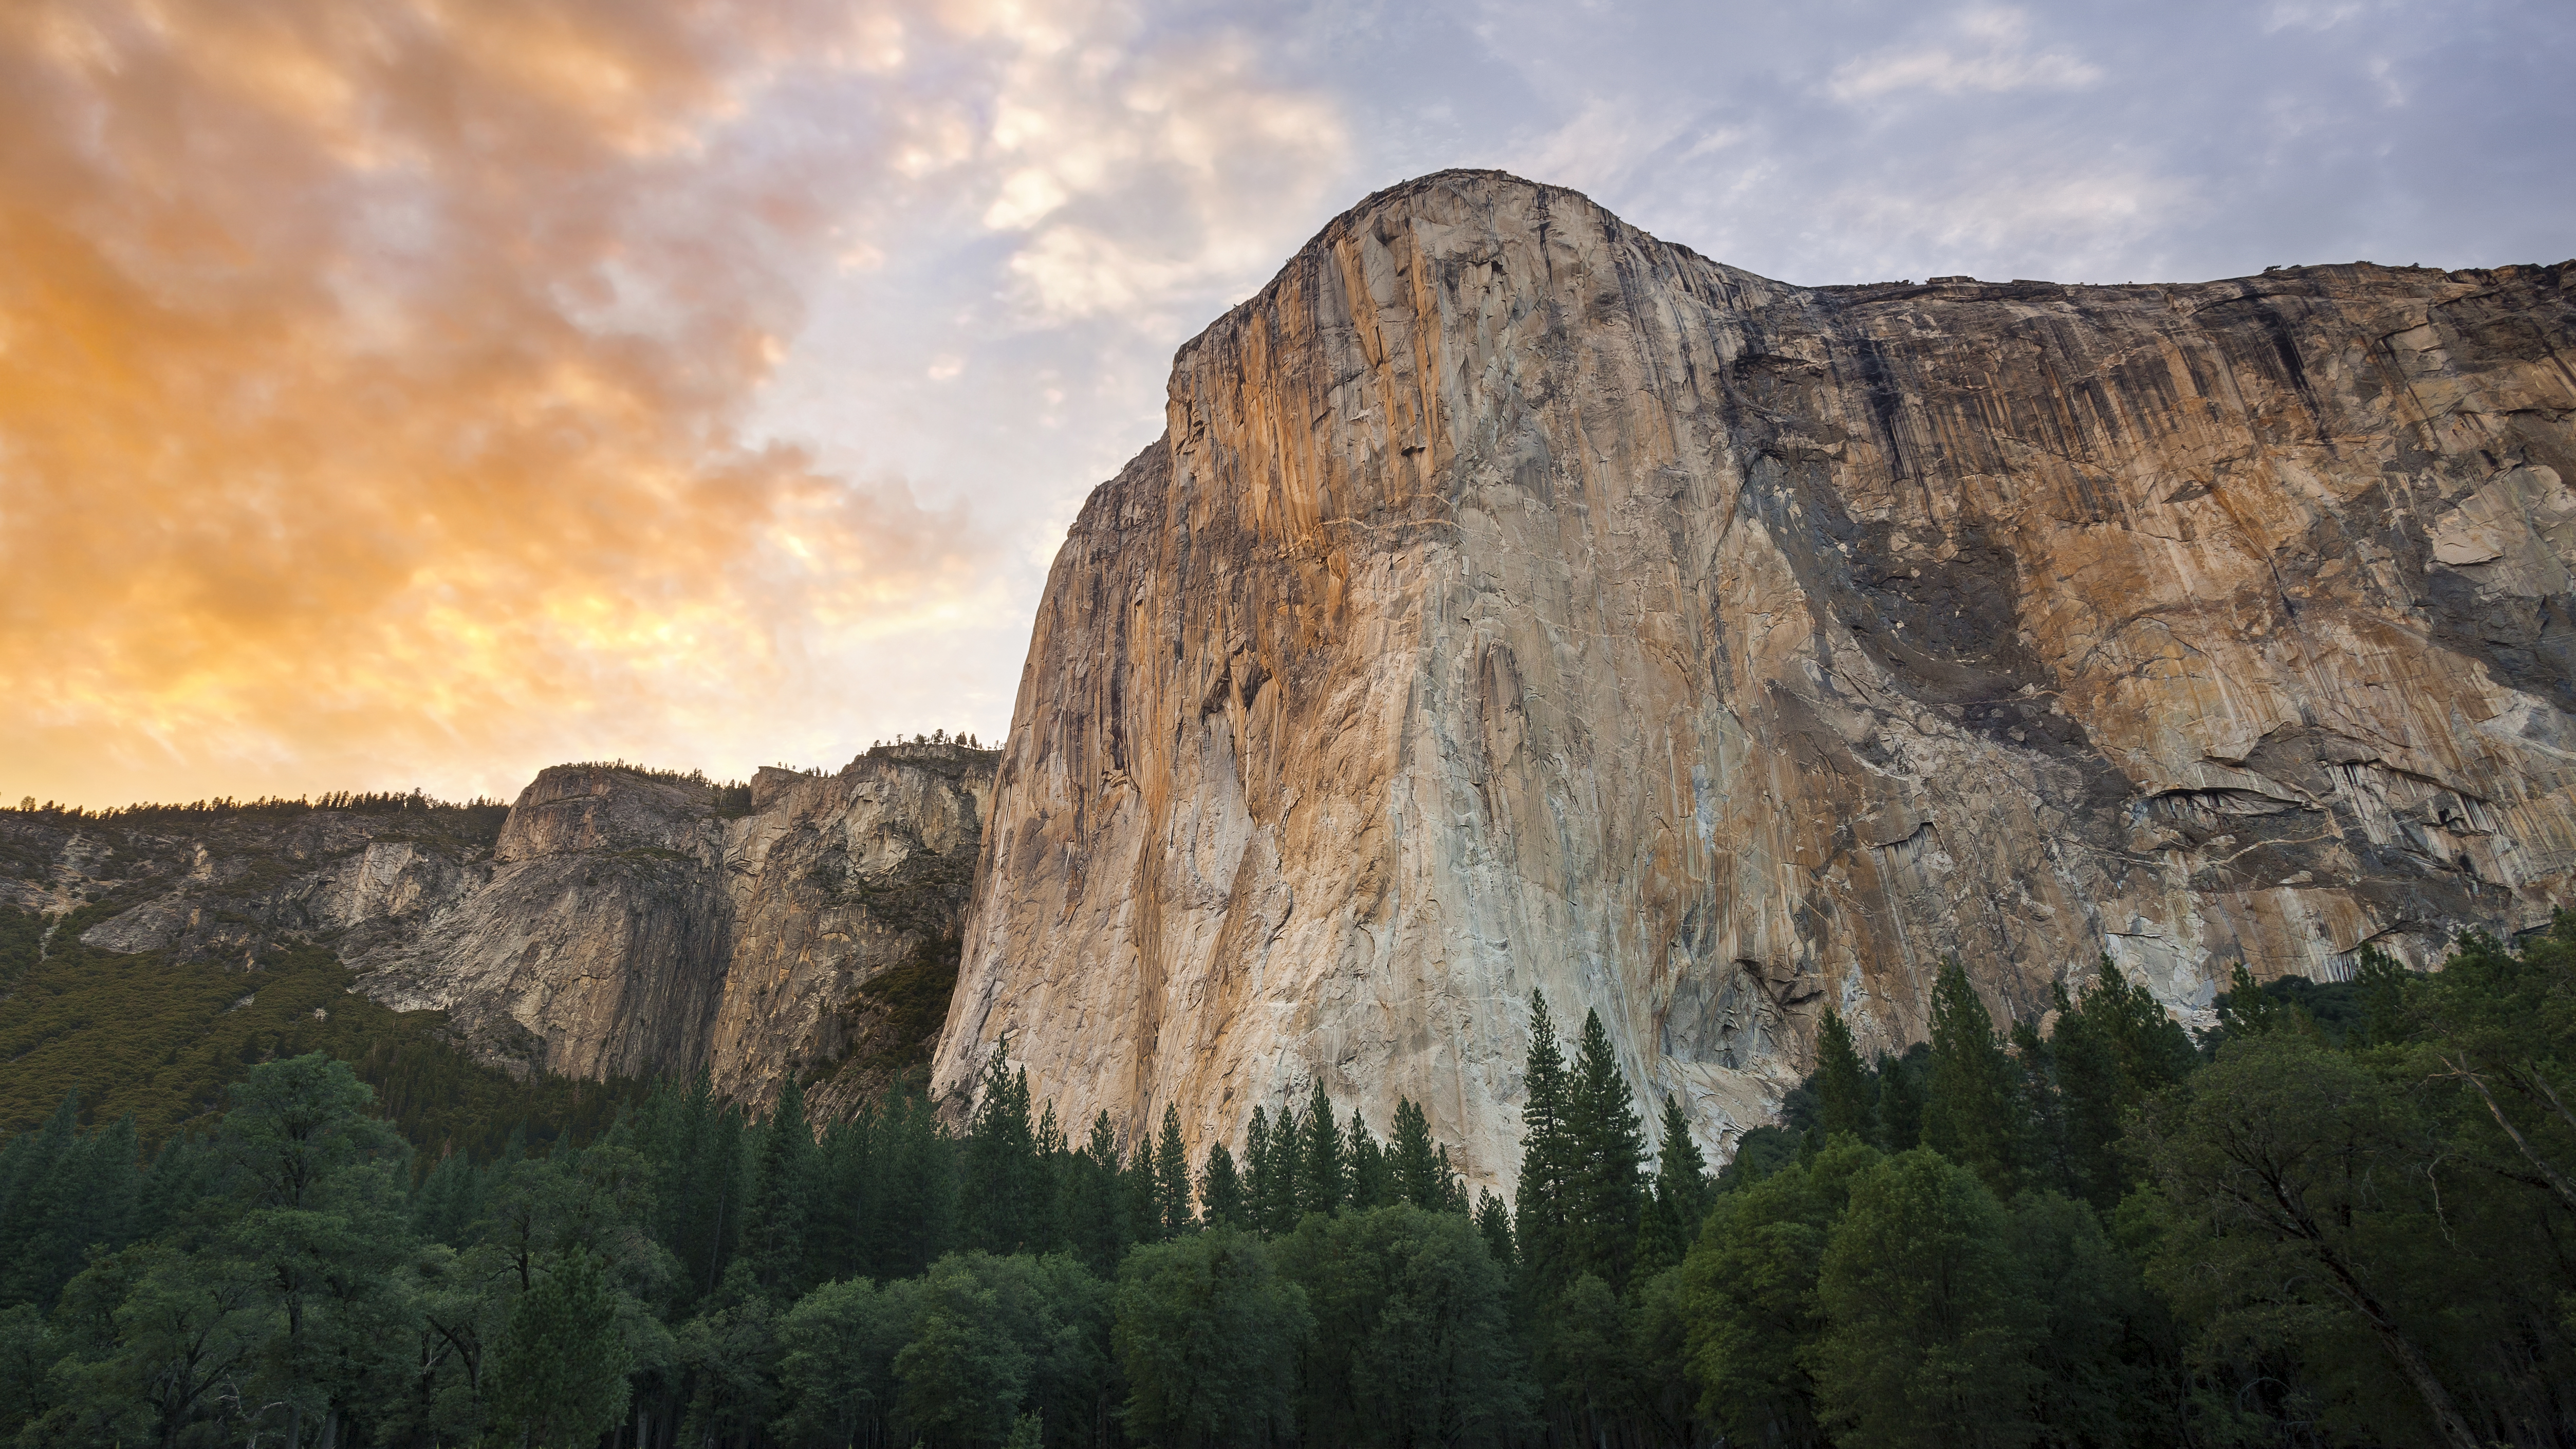 Download the new OS X Yosemite wallpapers for Mac iPhone and iPad 5013x2820